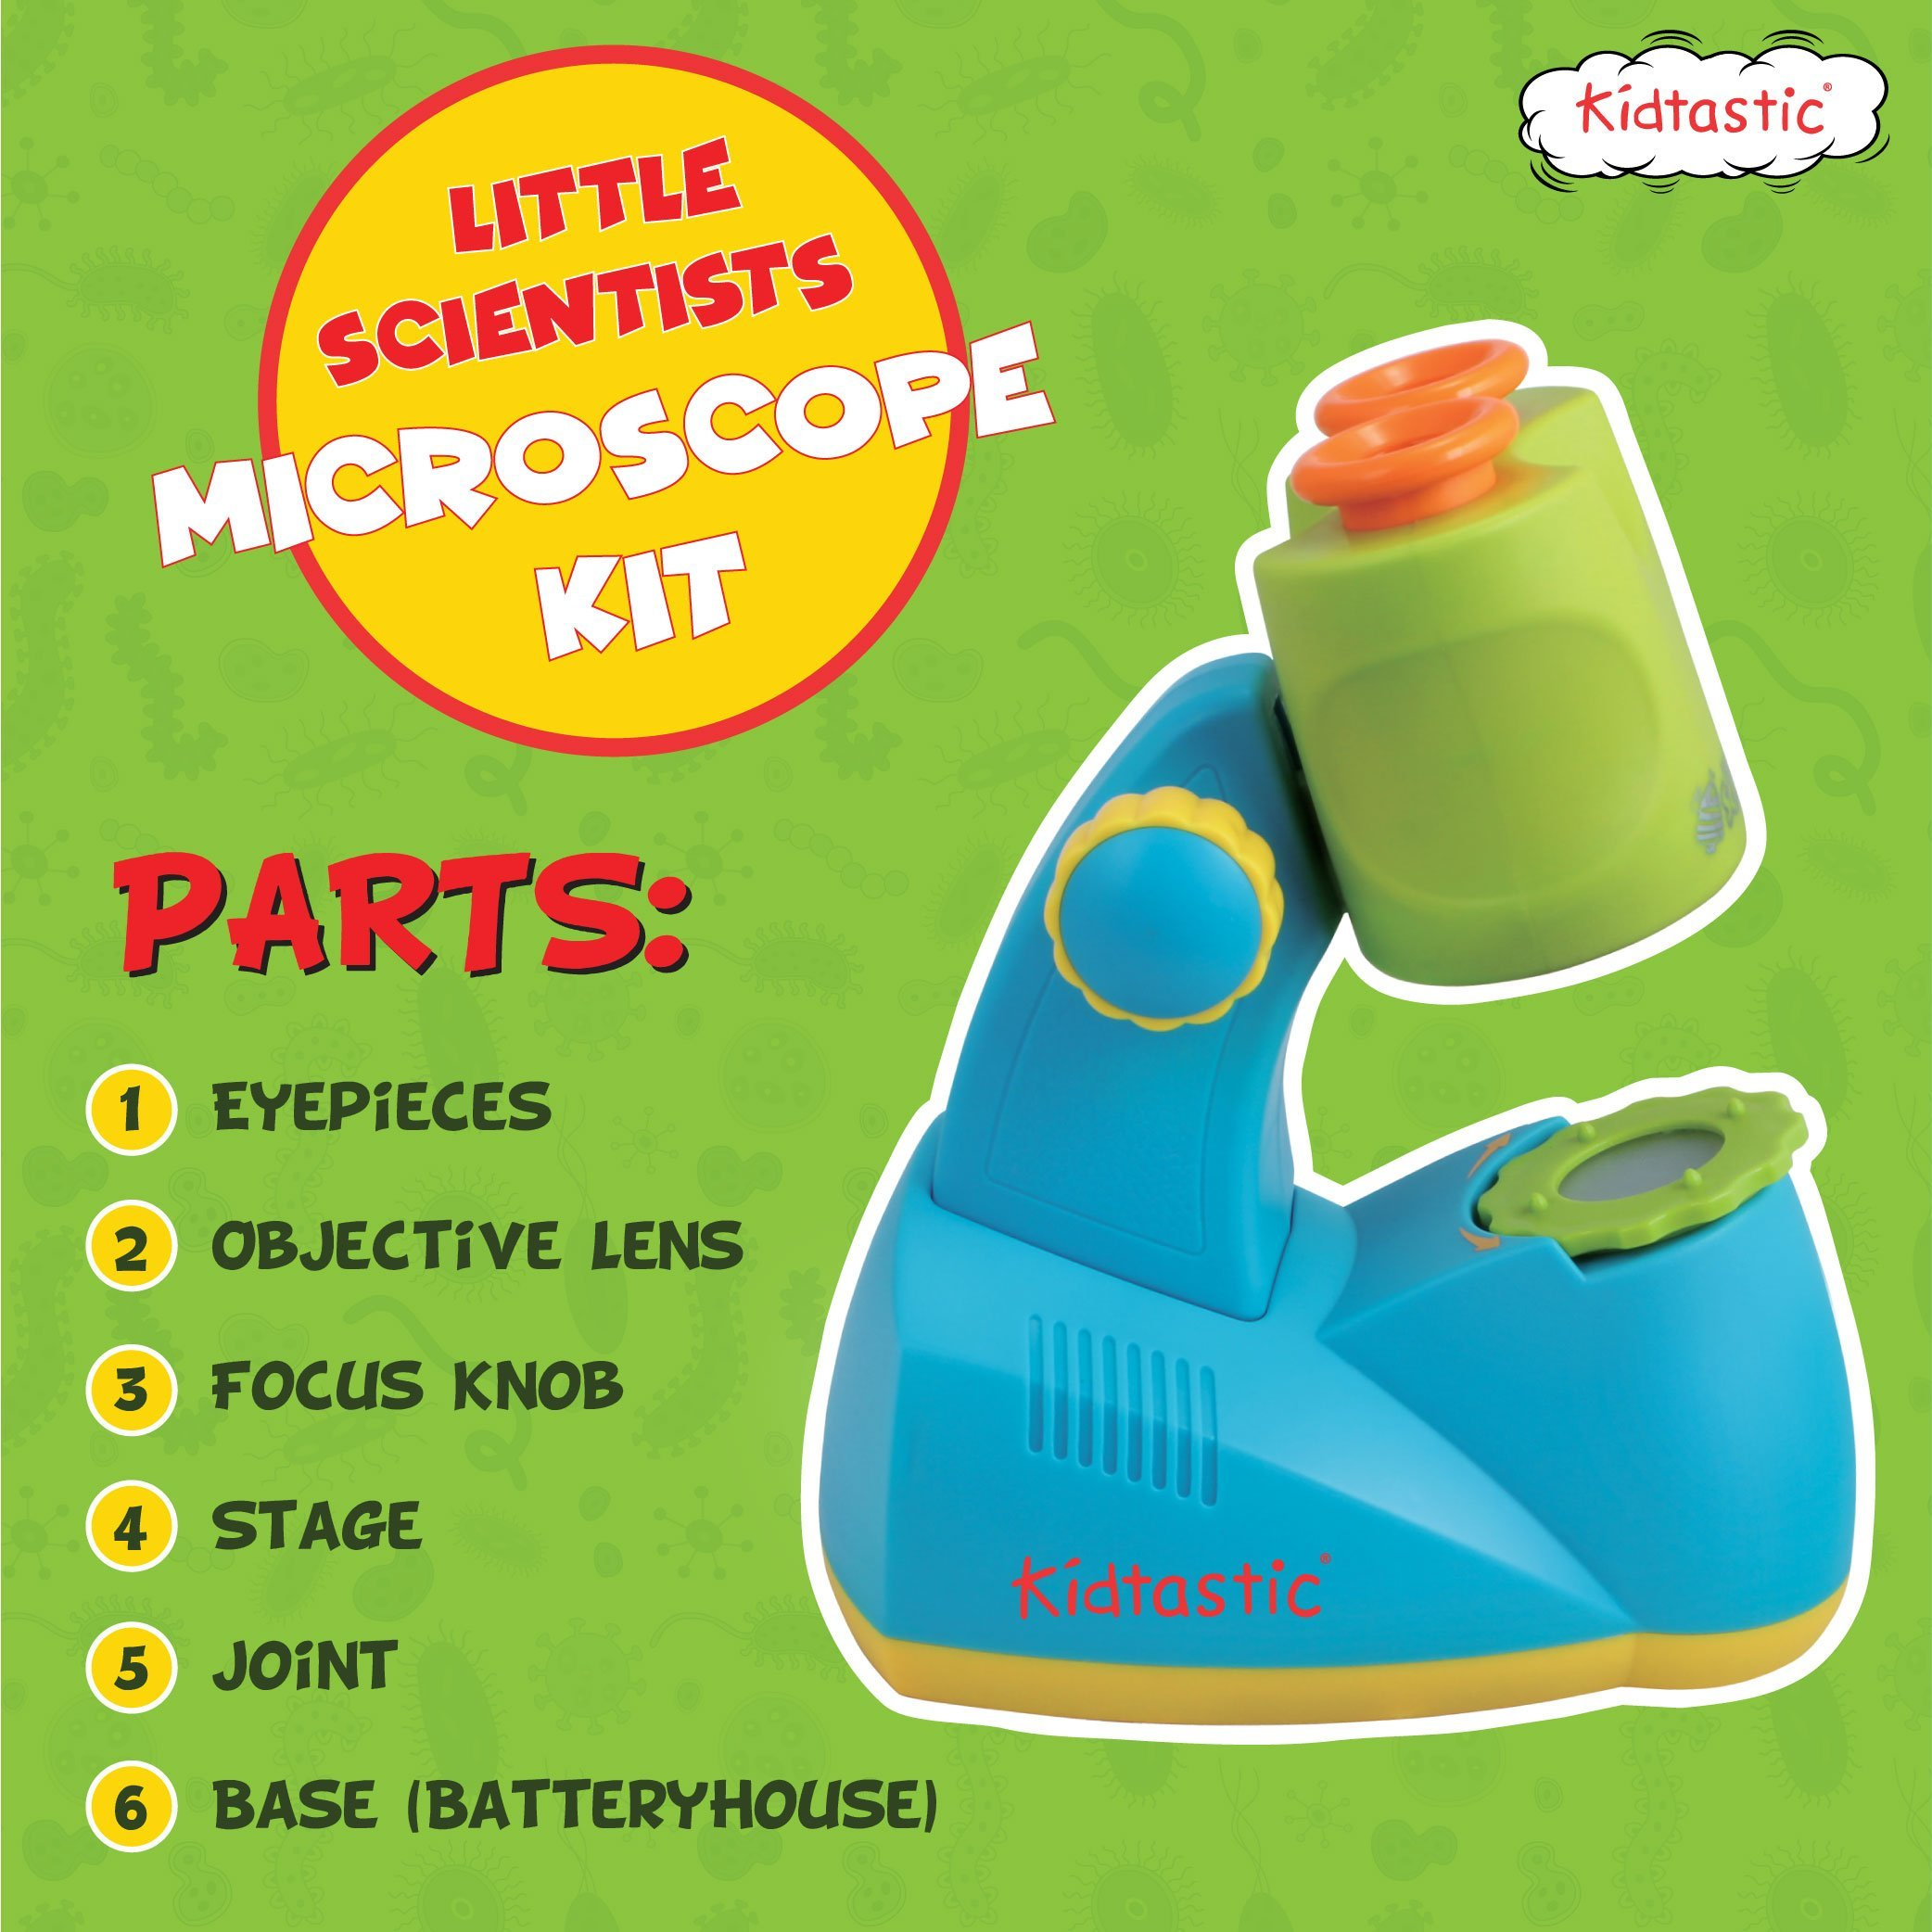 Kidtastic Microscope Science Kit for Kids - Fun Learning Toys for Preschoolers - STEM Toy for 3 Year olds - with 12 Slides Animals & Nature, 8X Zoom, LED Light - for Ages 3, 4, 5, 6 and up by Kidtastic (Image #6)